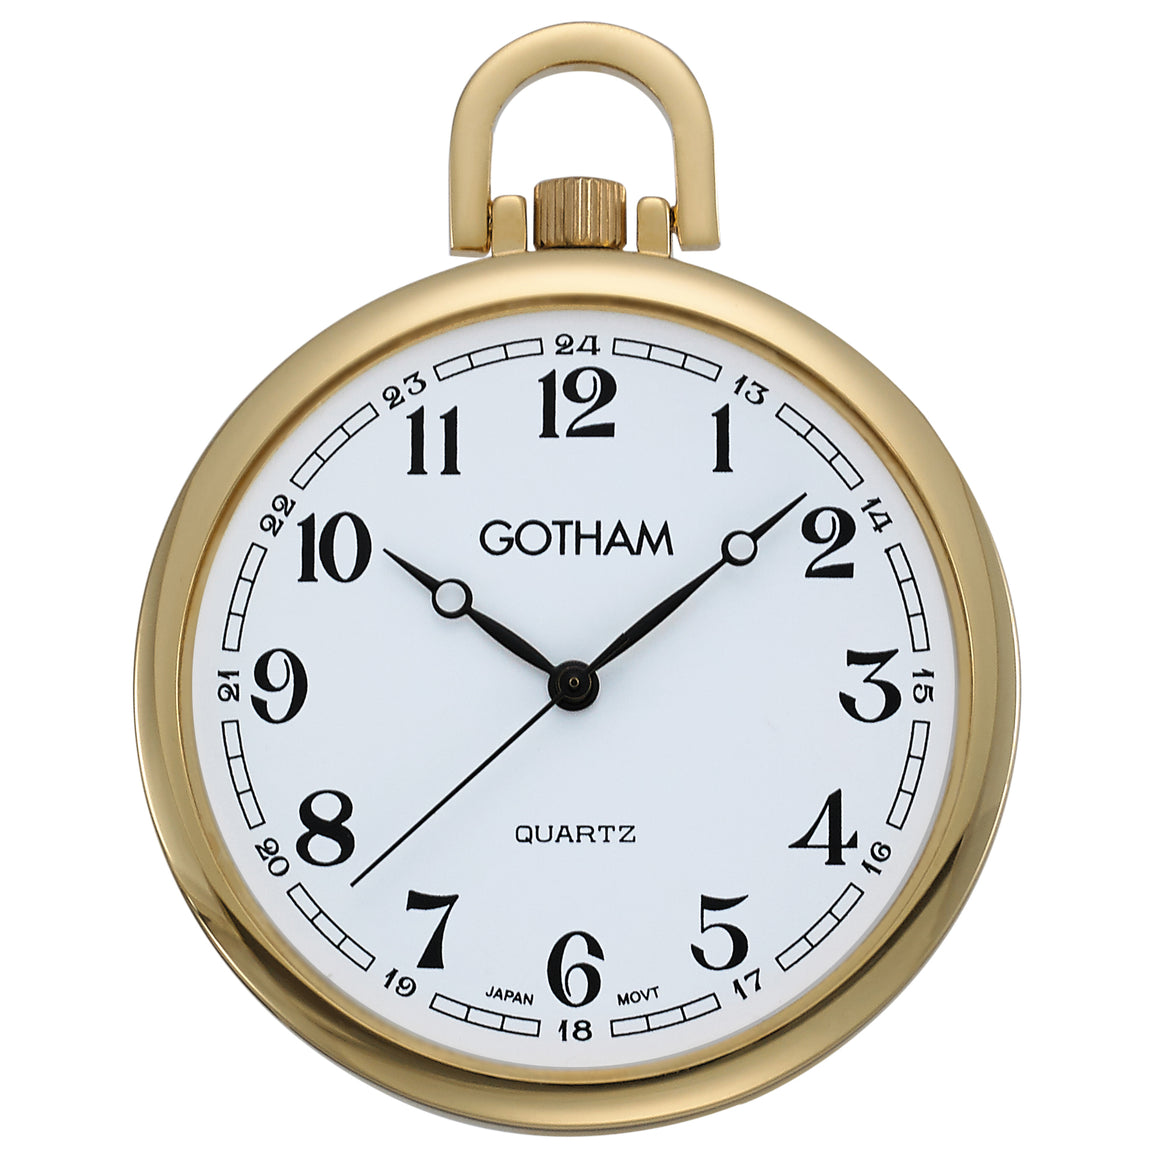 Gotham Men's Gold-Tone Slim Railroad Open Face Quartz Pocket Watch # GWC15028GA - Gotham Watch